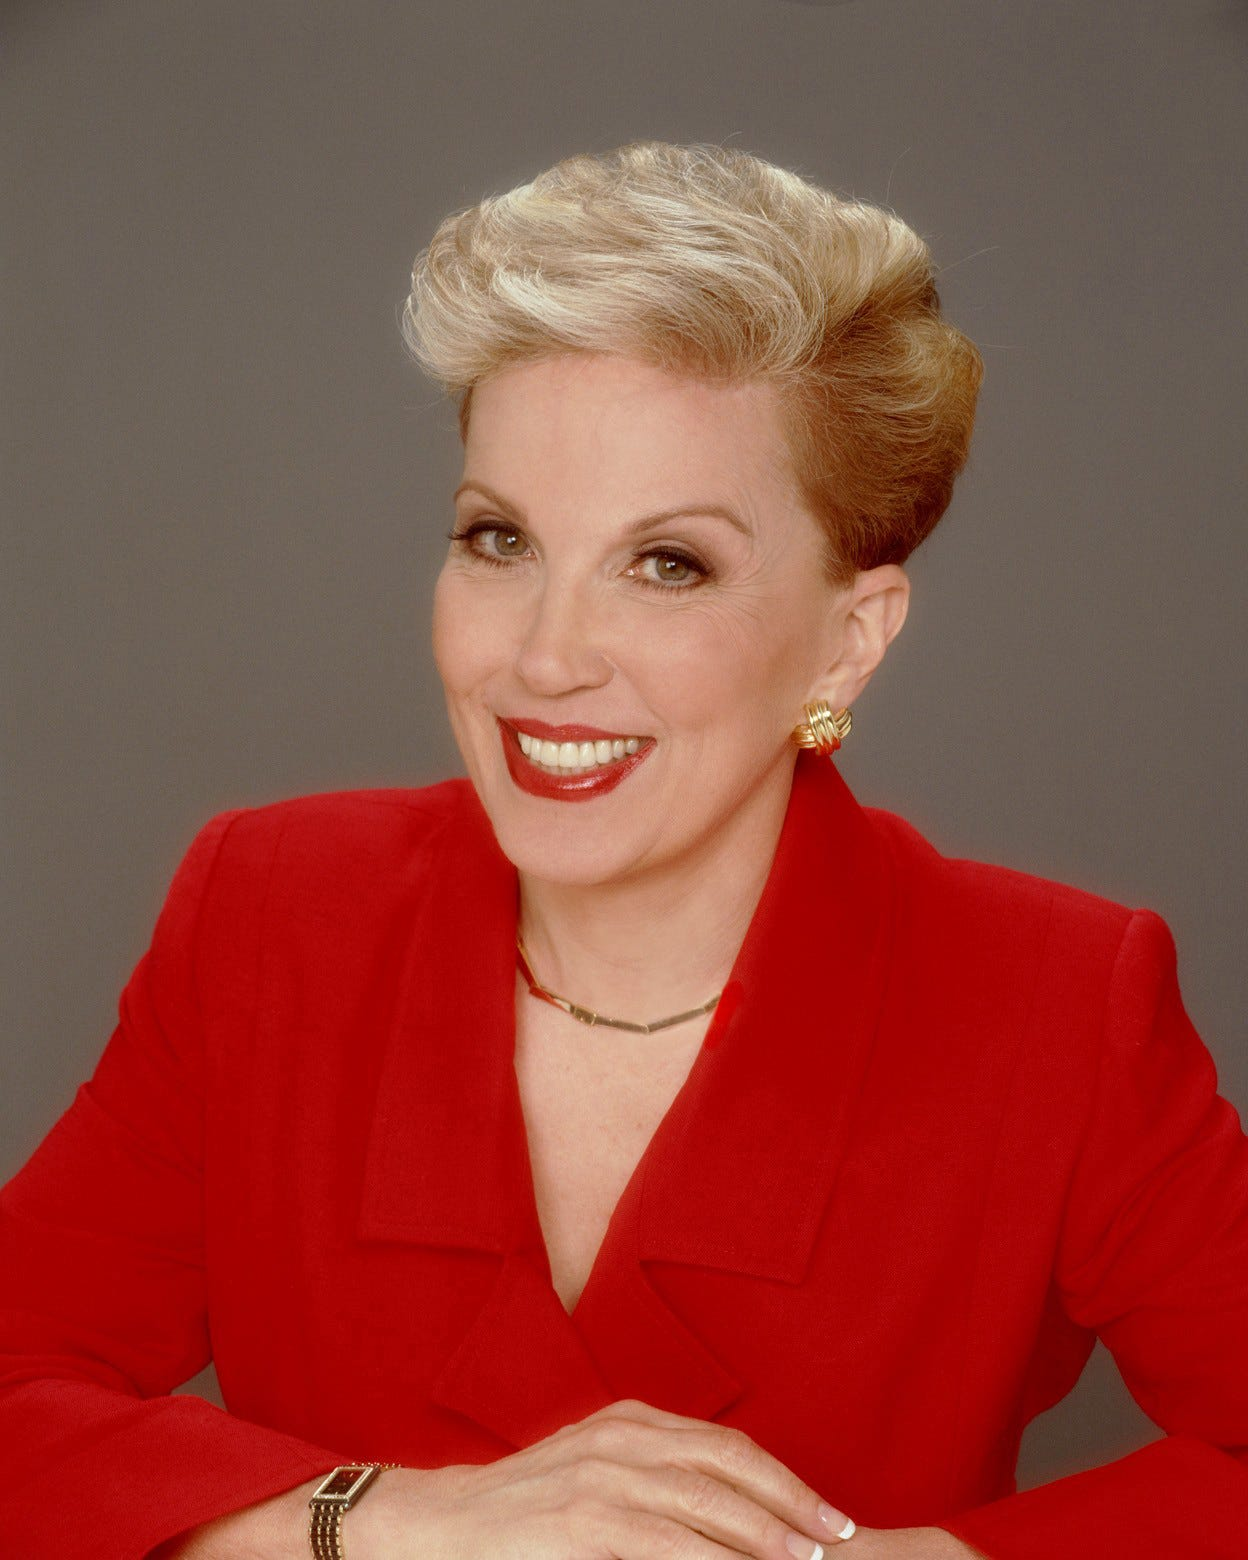 Dear abby online dating